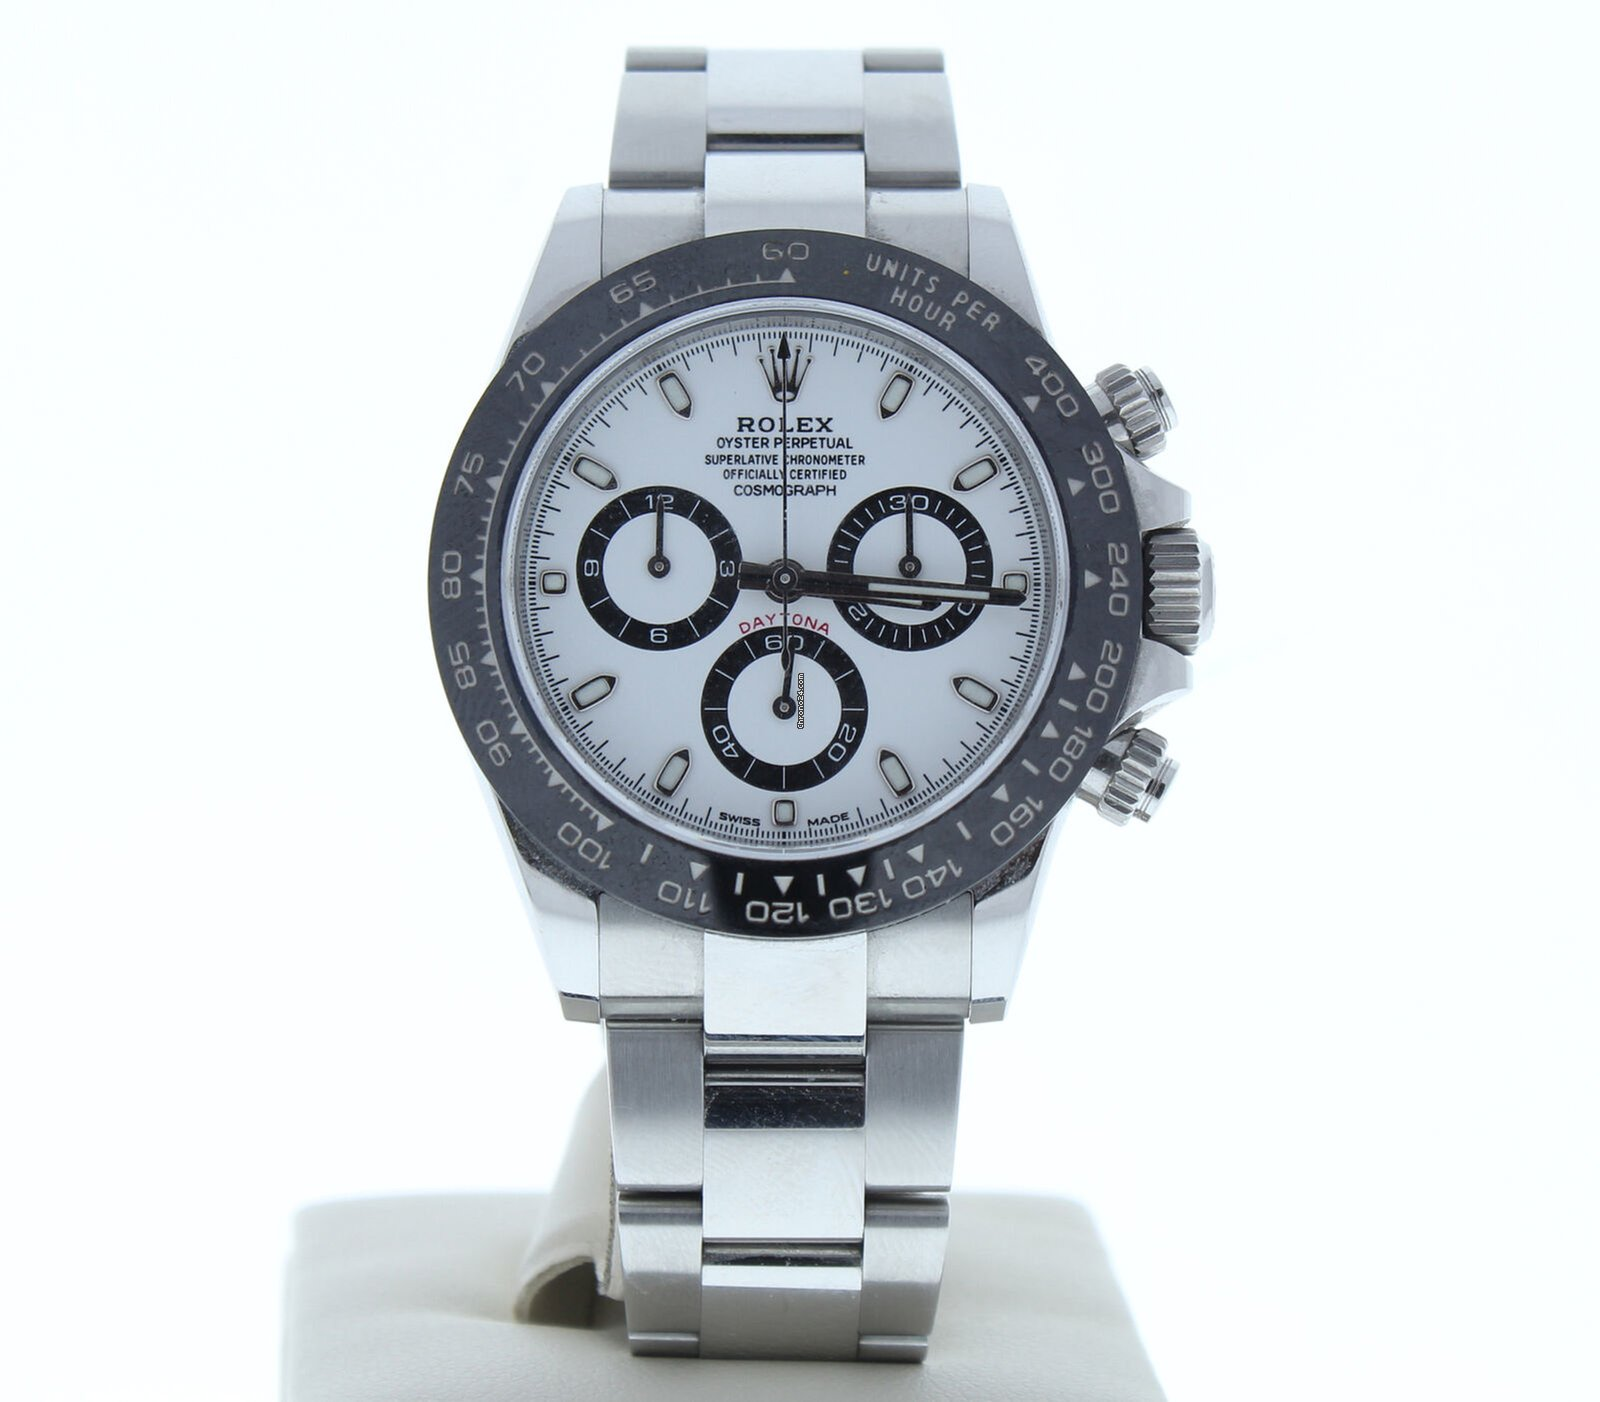 0fdc9bbe72bab Rolex Daytona 116500 Ceramic Bezel Watch Stainless Steel Oyster Band White  Dial